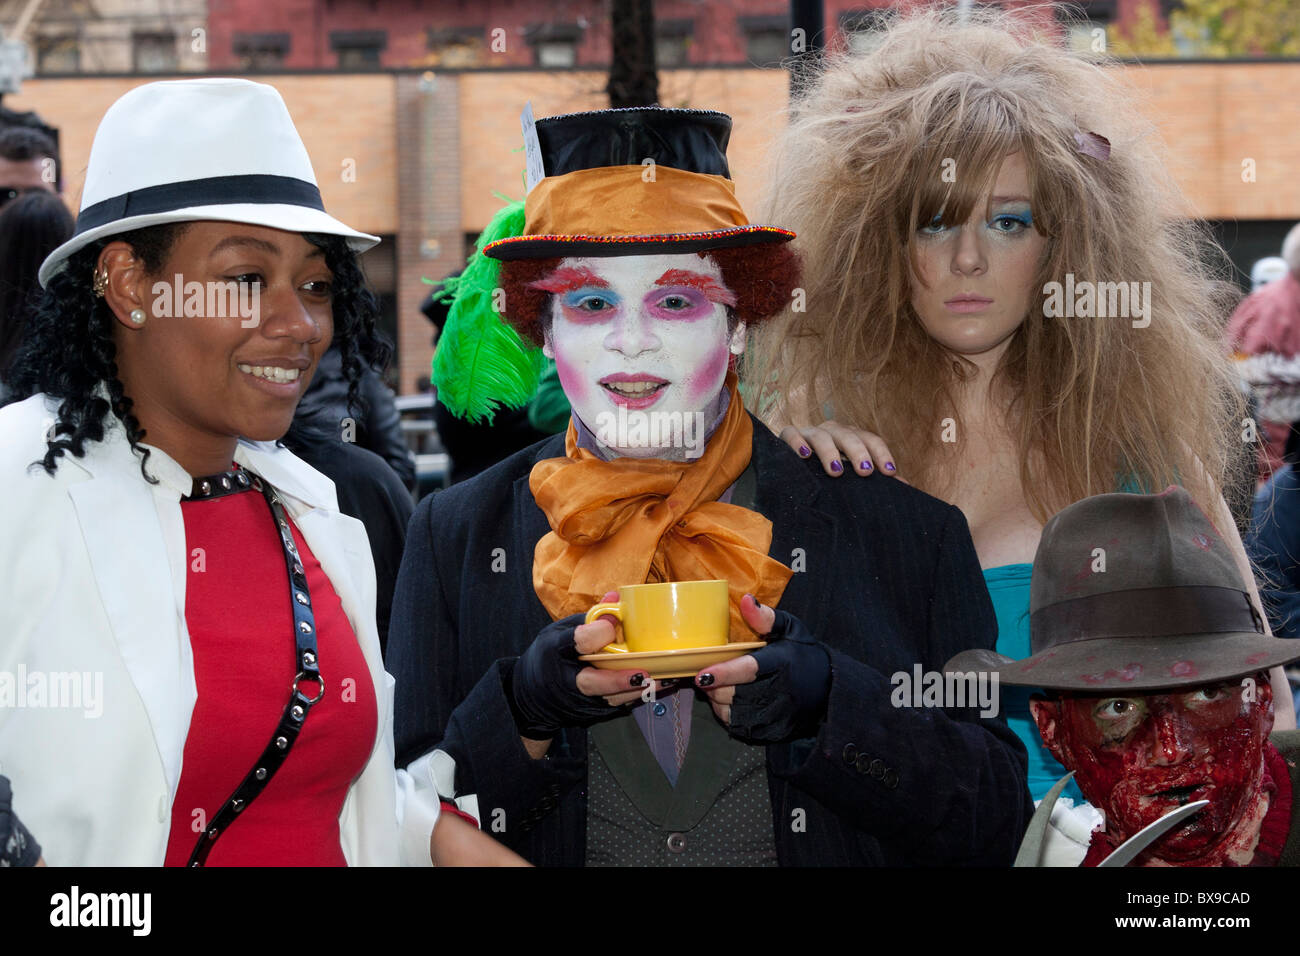 Alice, the Mad Hatter, and Freddy Krueger pose with a spectator at the 2010 Village Halloween parade in Greenwich - Stock Image